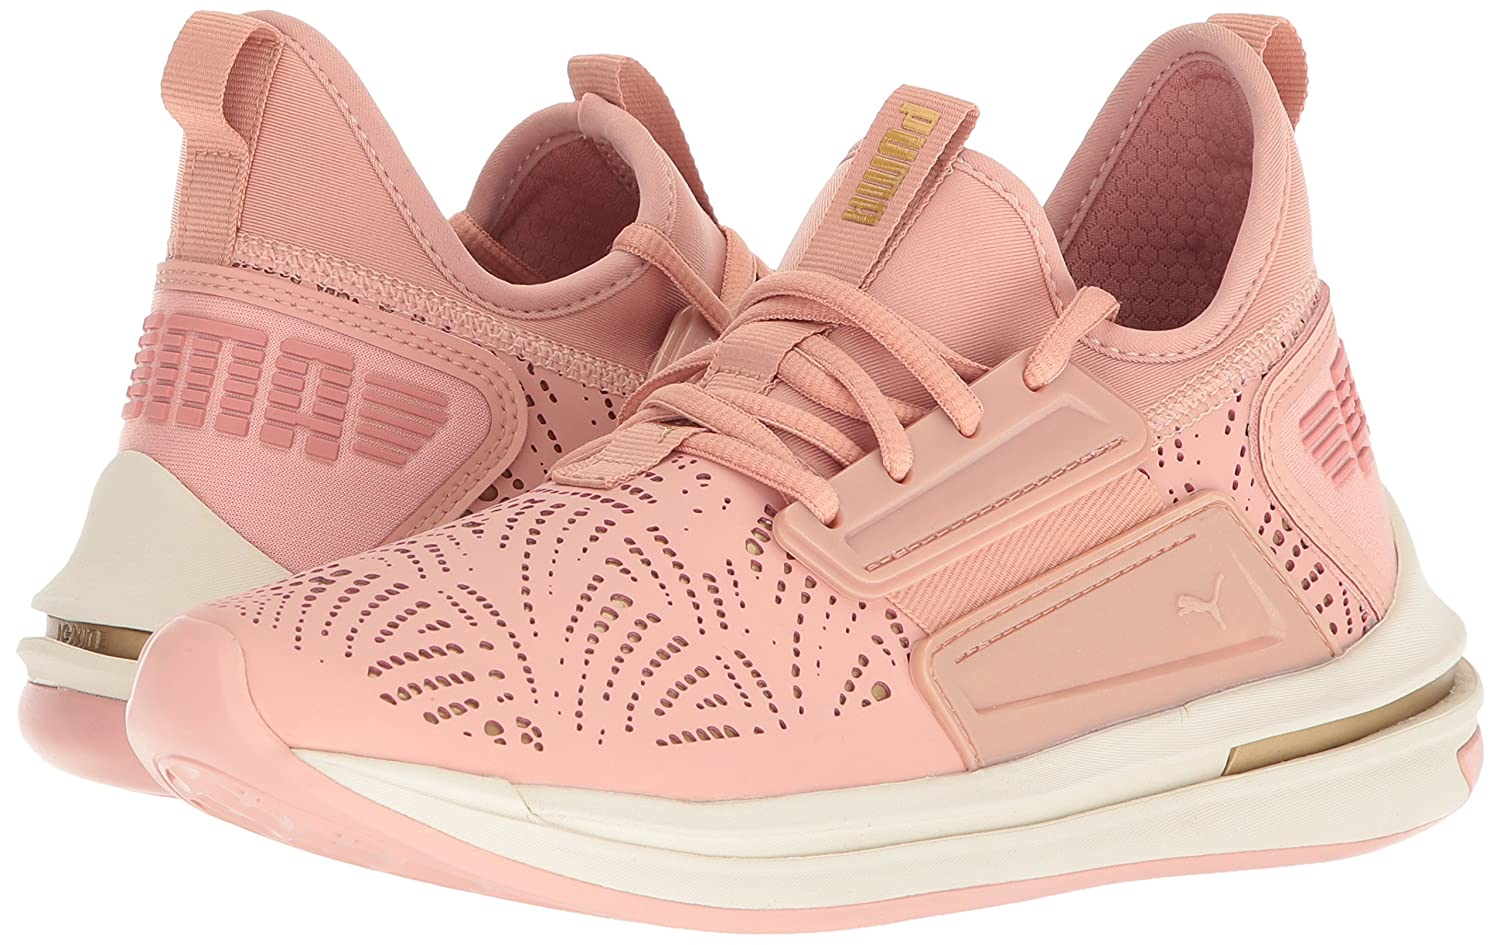 PUMA Women's Ignite Limitless SR Lazercut Wn Sneaker B0721MQJHL 6.5 M US|Peach Beige-gold